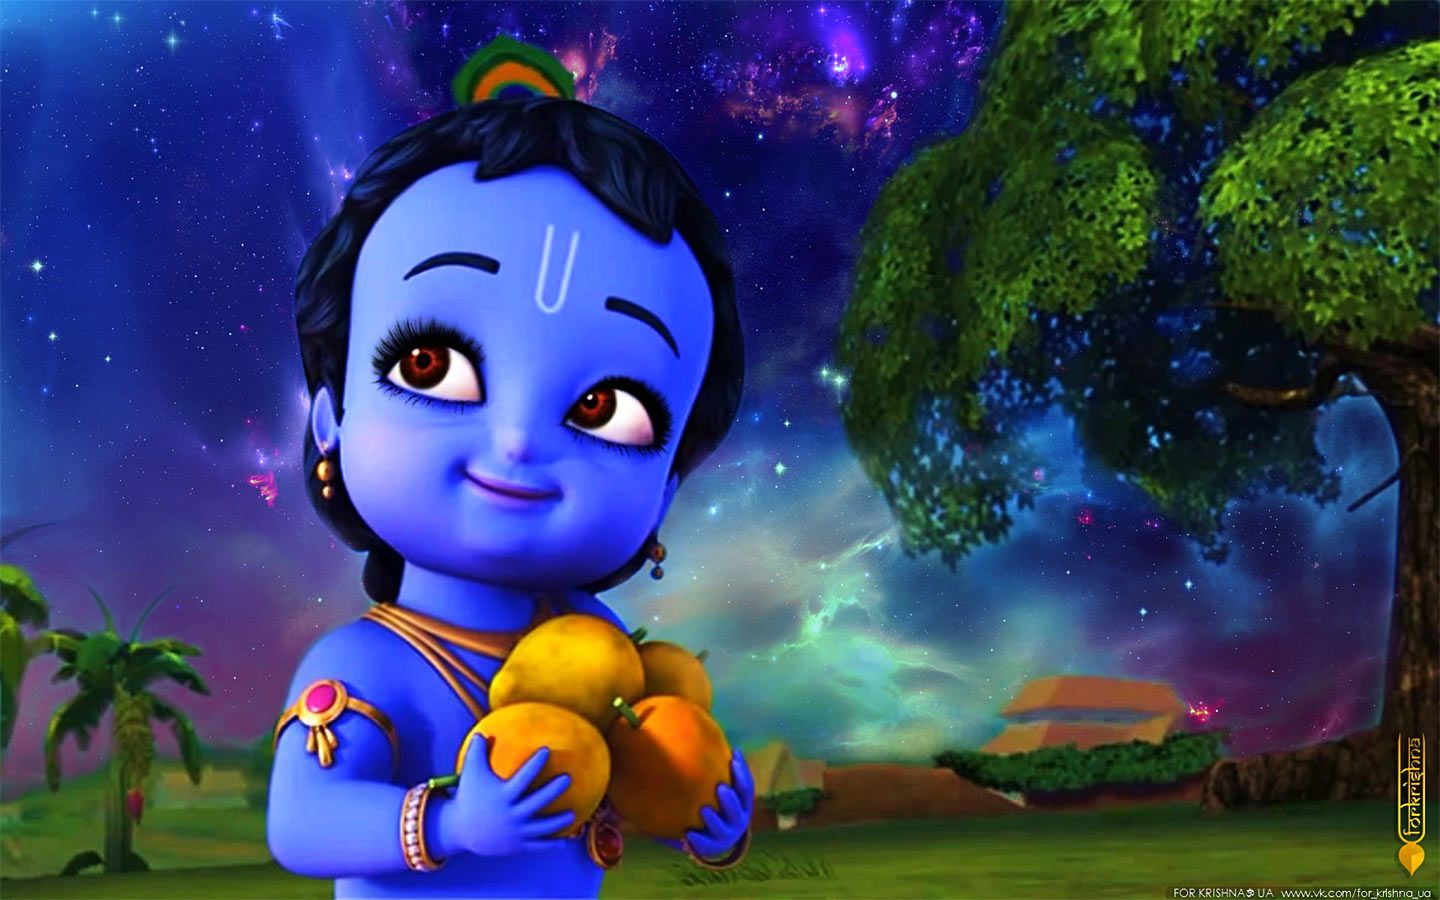 Little Krishna Hd Wallpaper Full Size Free Download Little Krishna Cartoons Krishna Lord Krishna Hd Wallpaper